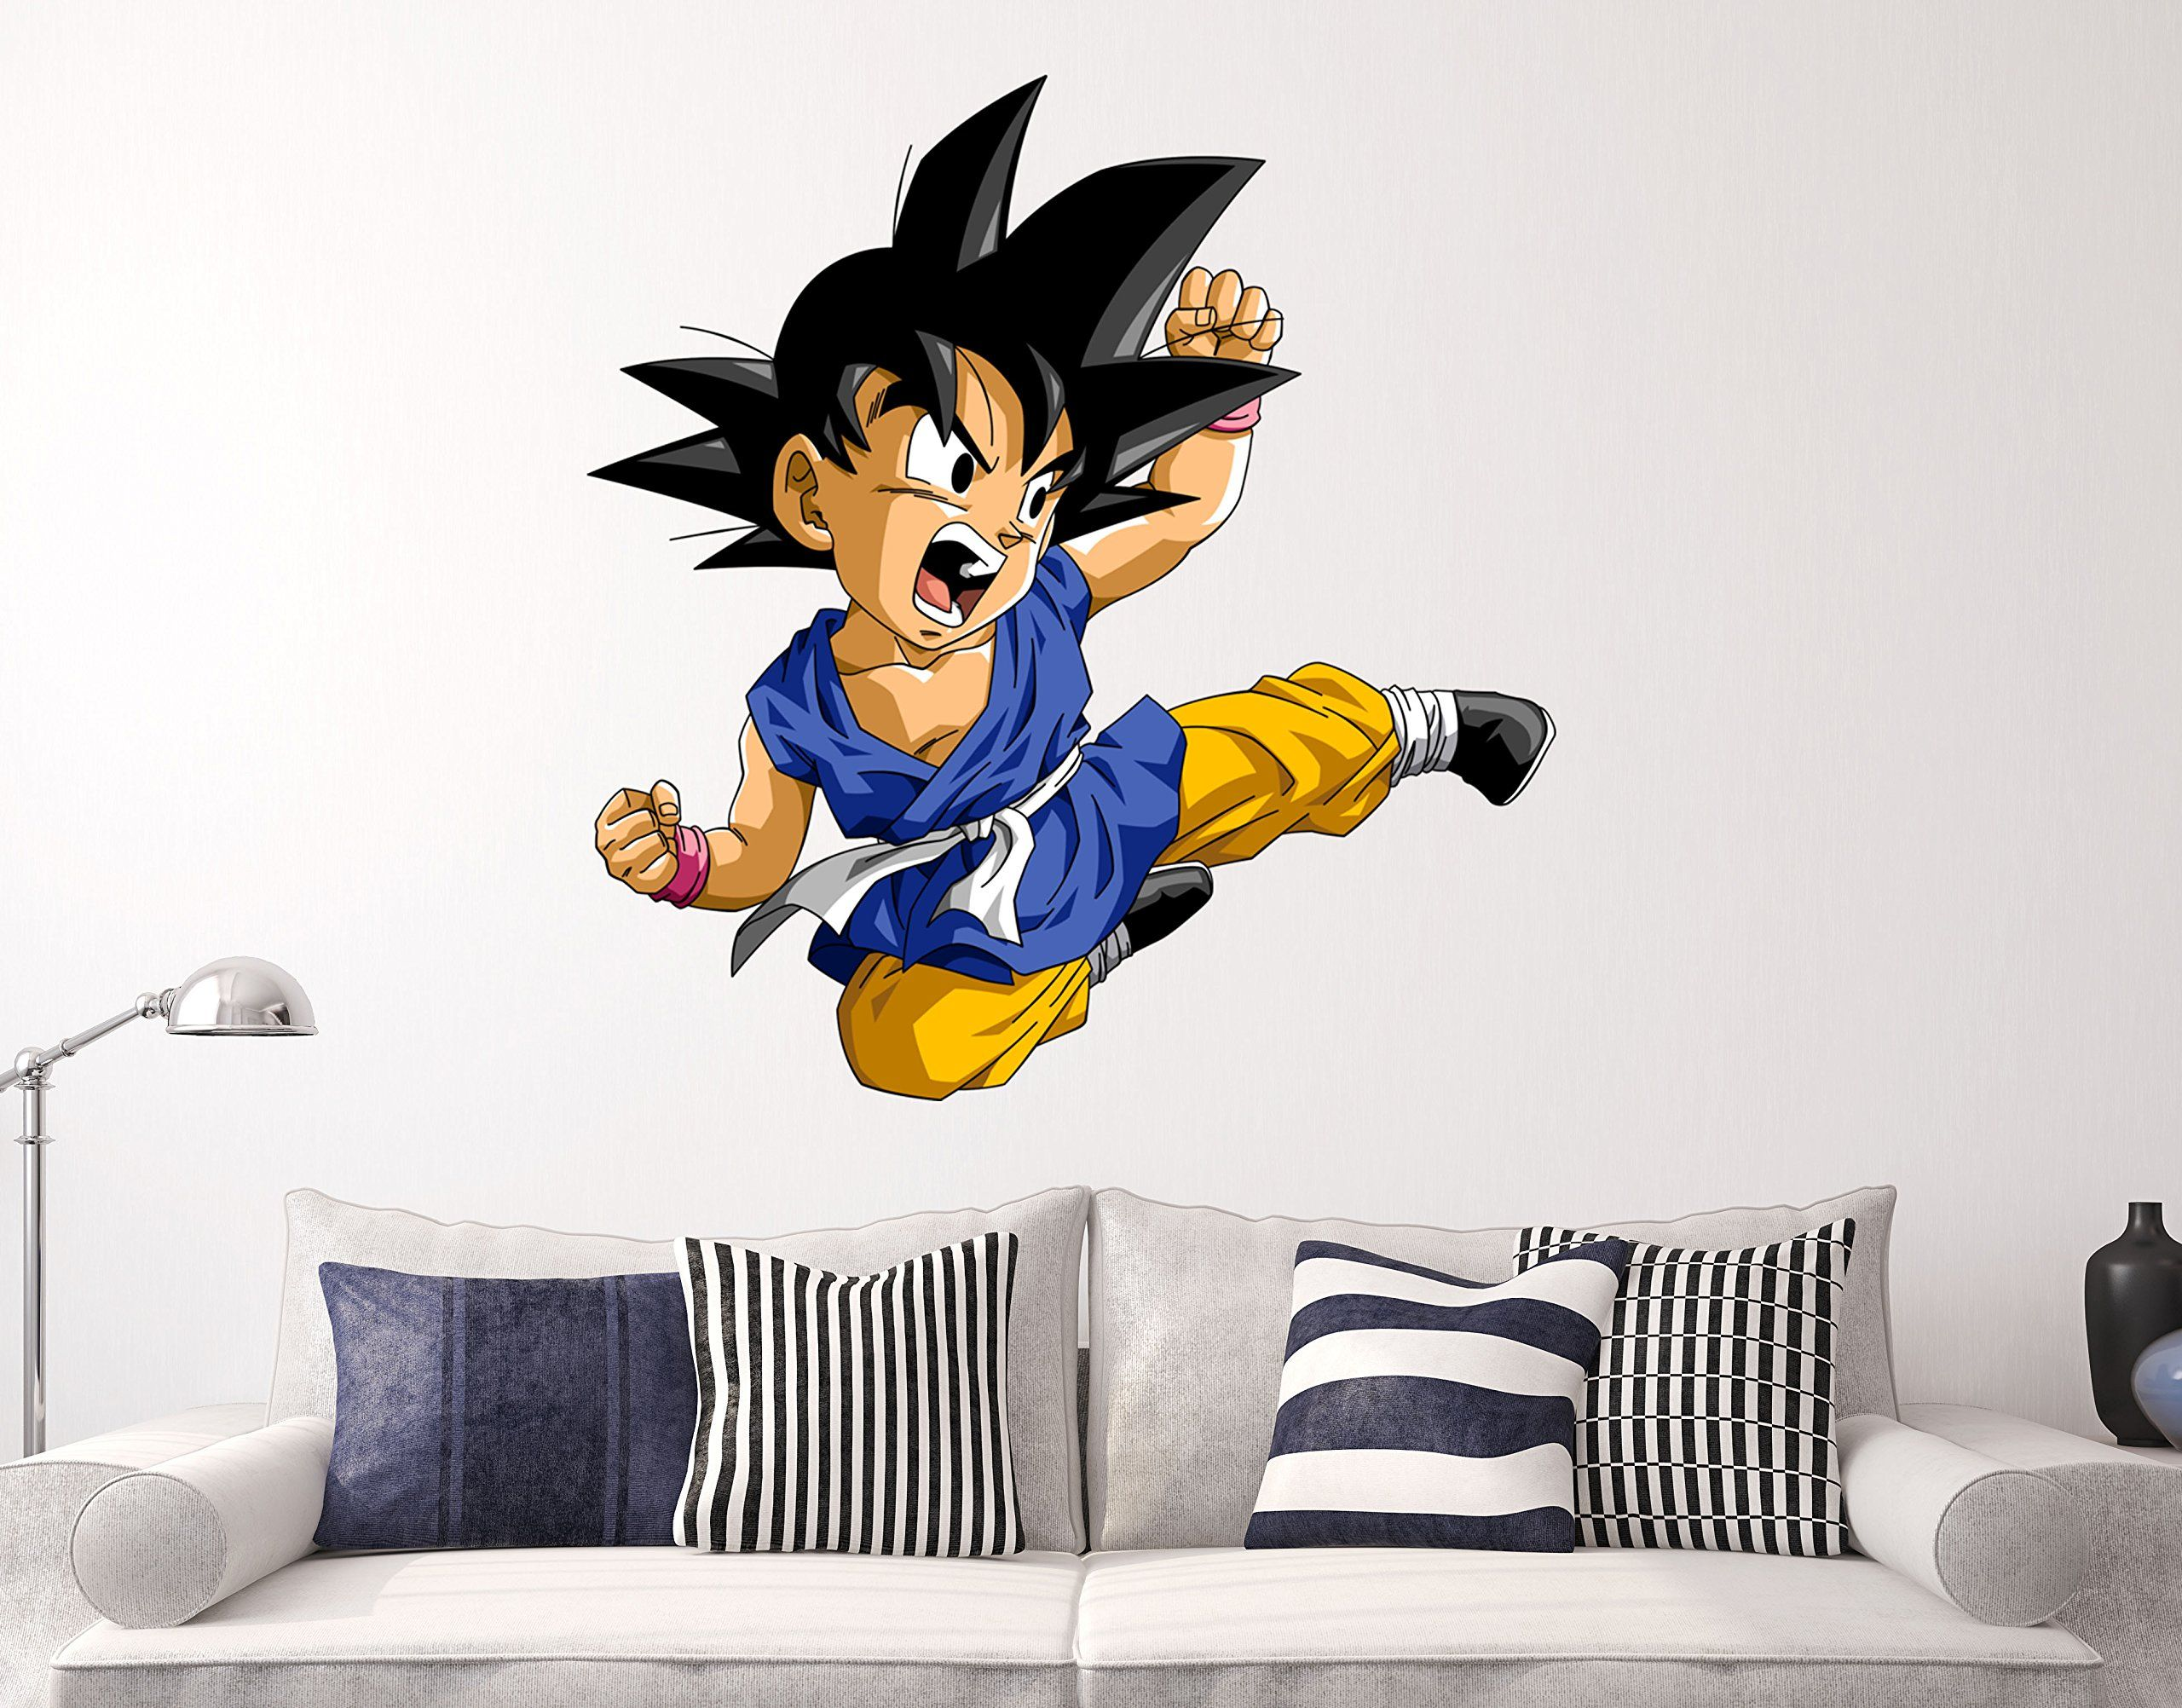 Goku babe dragon ball z wall decal animation anime sticker decor goku babe dragon ball z wall decal animation anime sticker decor vinyl hd awesome amipublicfo Images